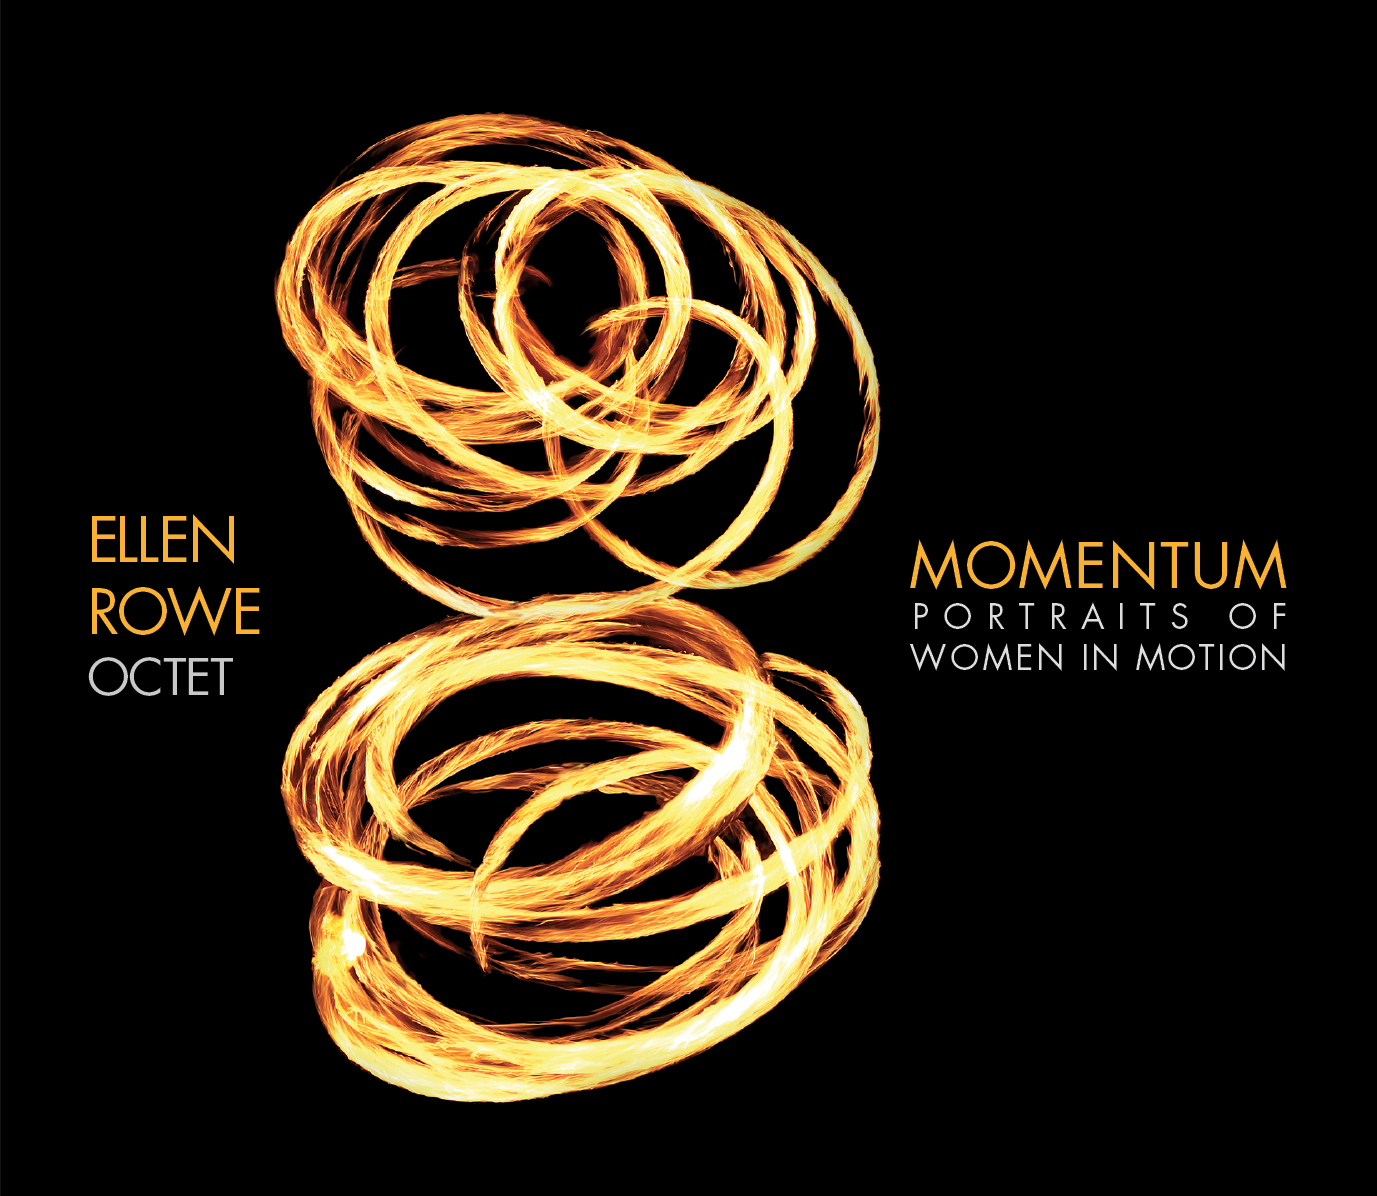 REVIEW: Ellen Rowe Octet's Momentum: Portraits of Women in Motion Reviewed by All About Jazz